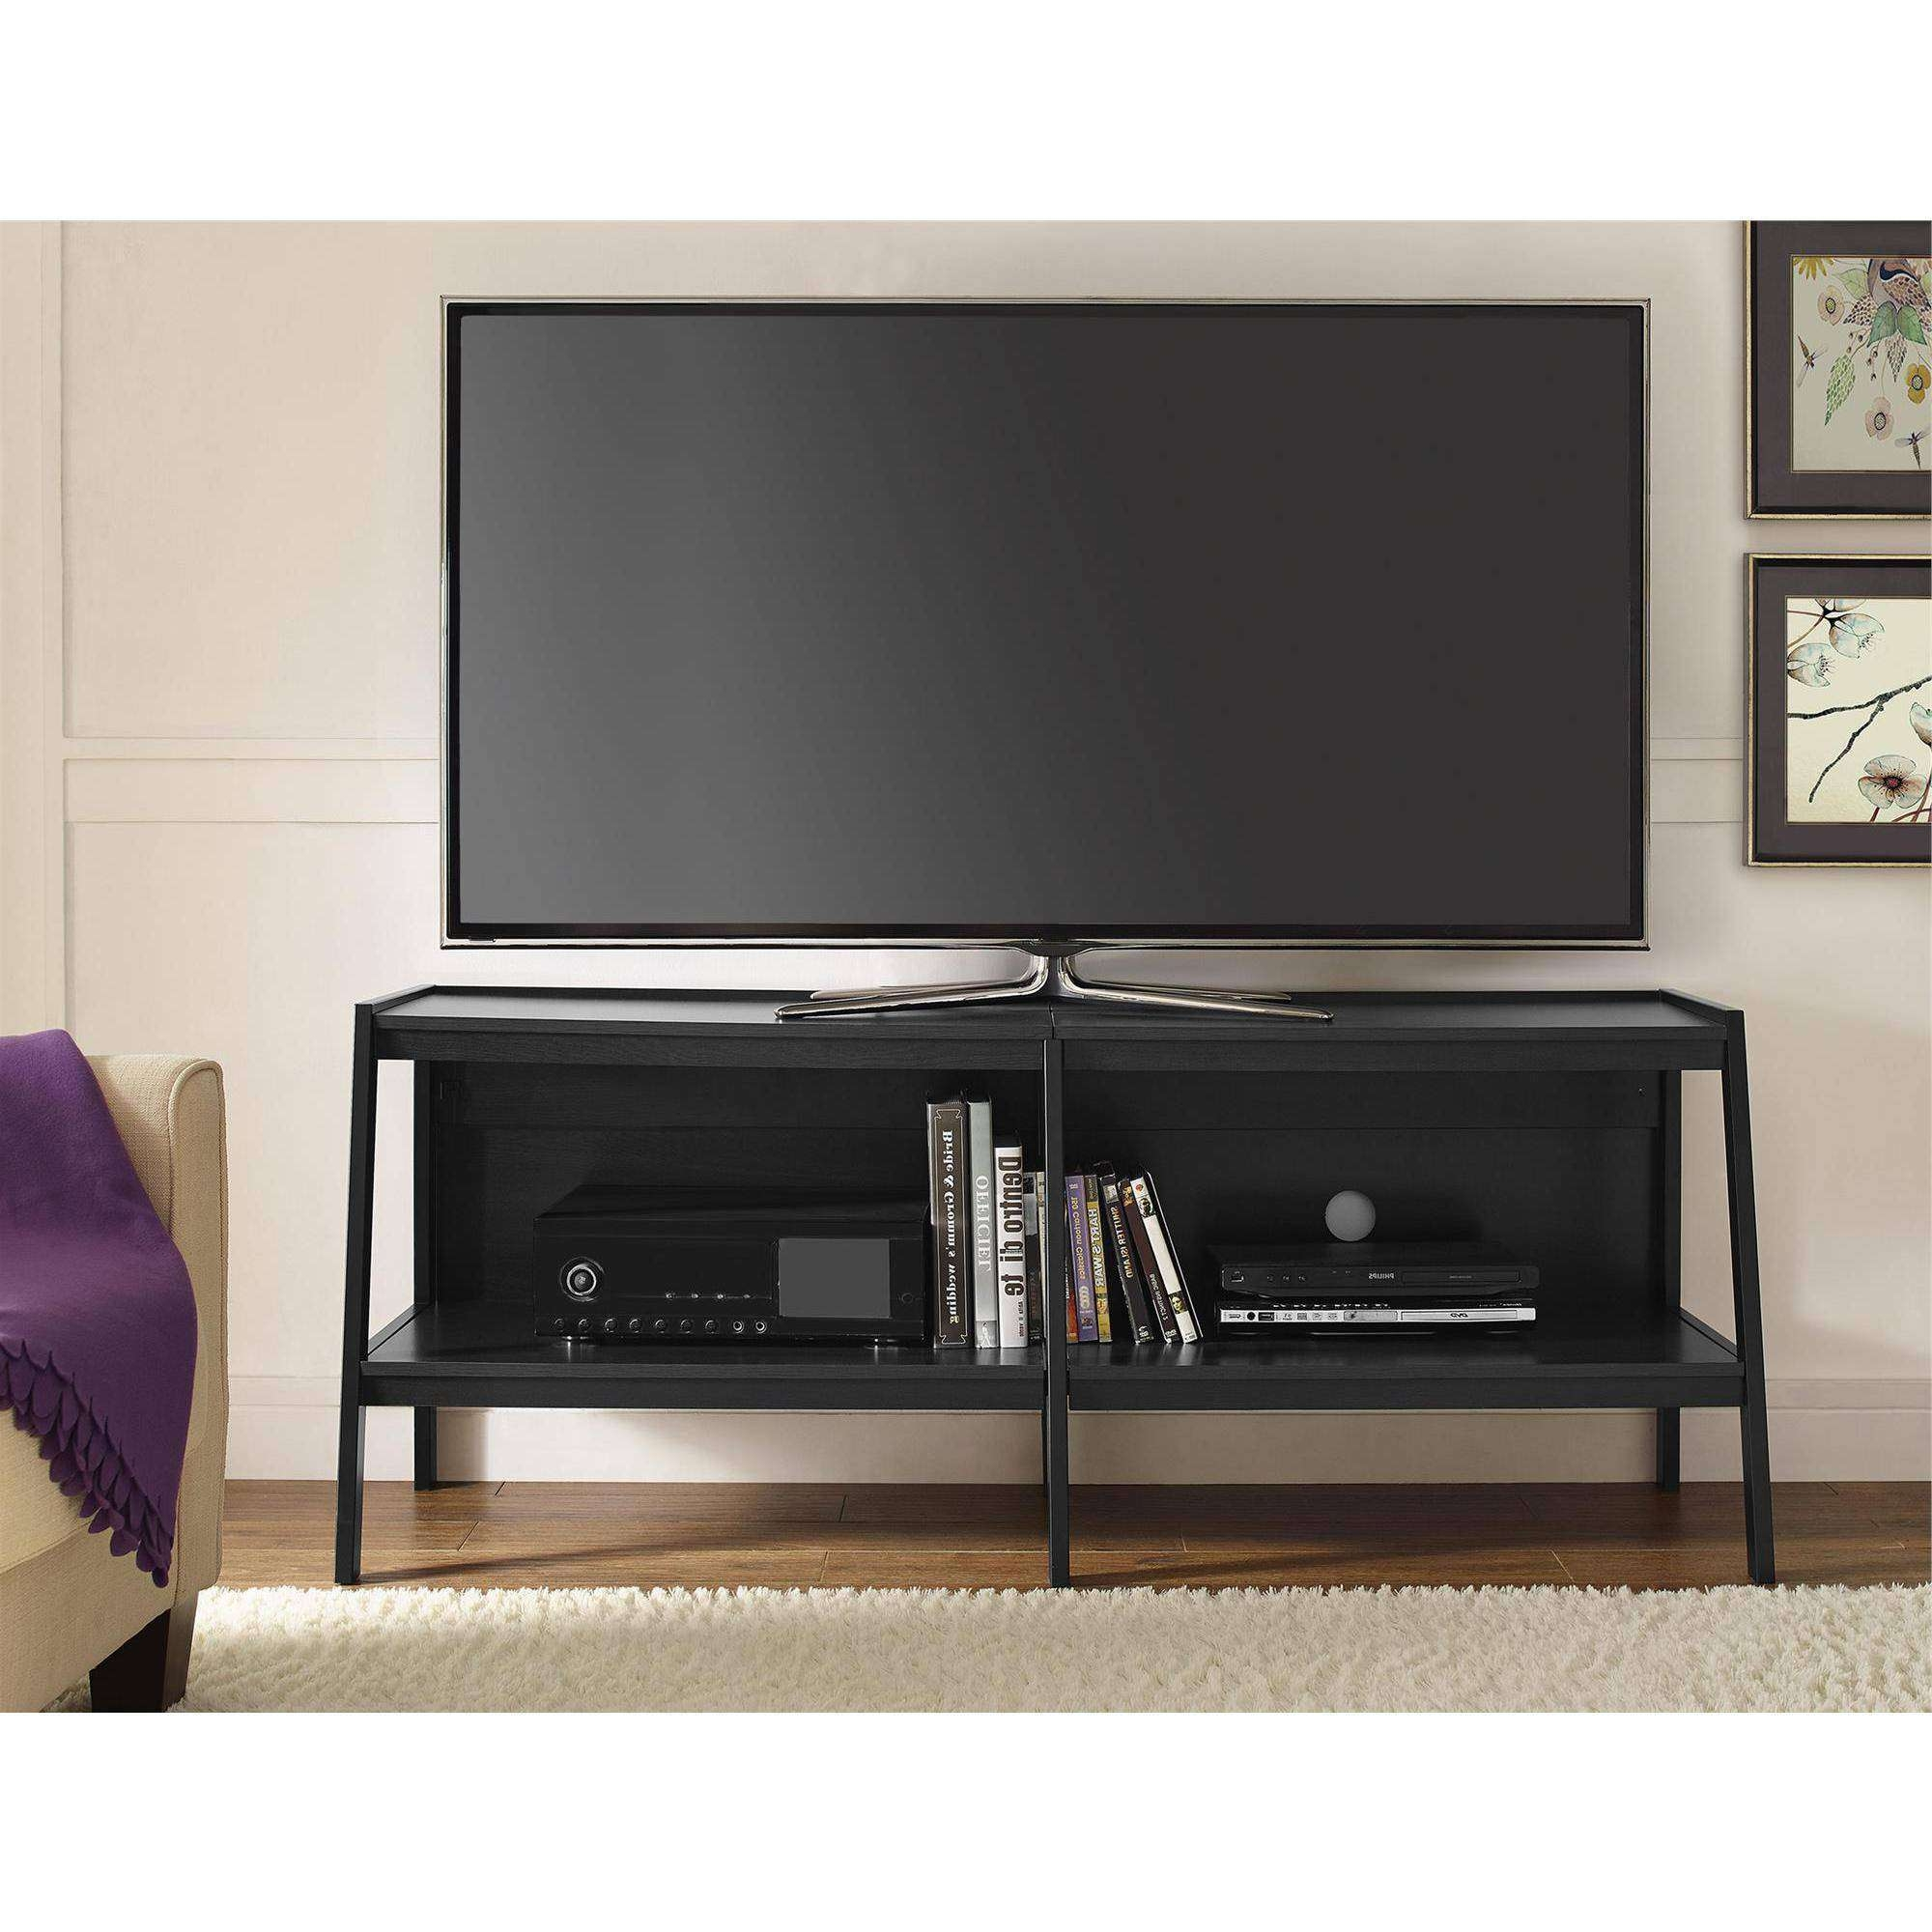 60 Inch Tv Stands For Tv Stands 38 Inches Wide (View 9 of 15)